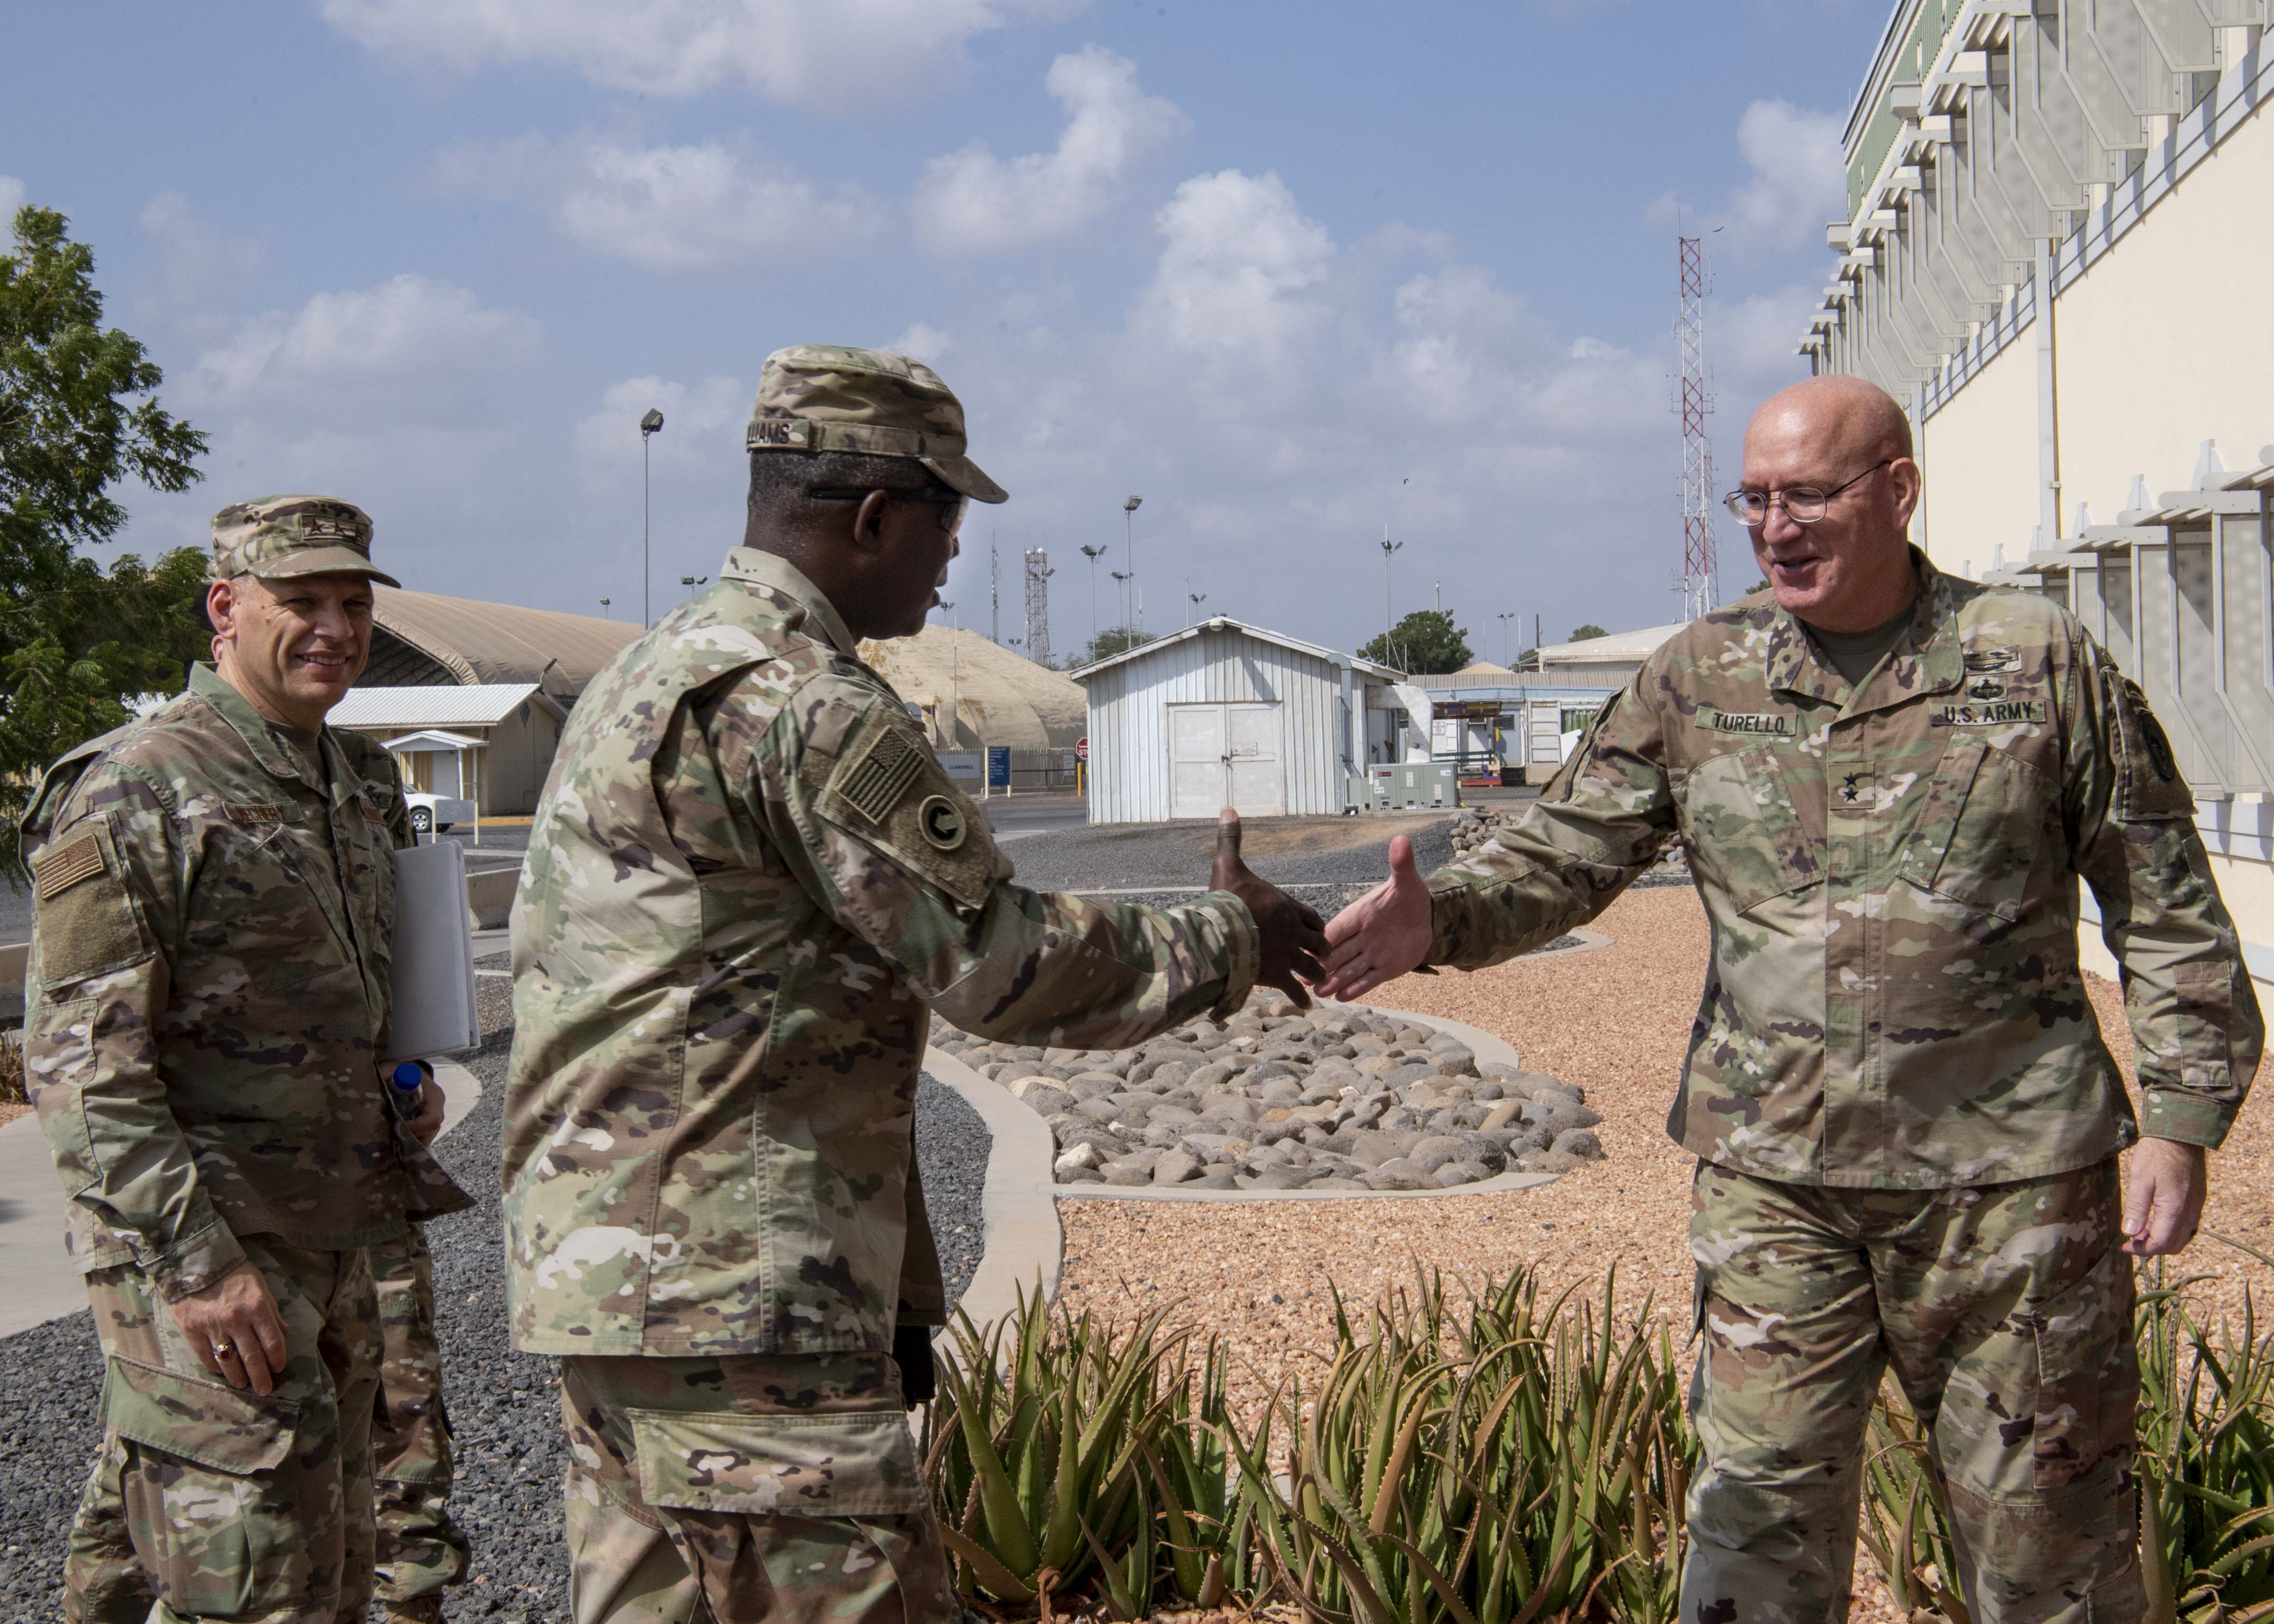 U.S. Army Maj. Gen. Michael Turello, commanding general, Combined Joint Task Force-Horn of Africa (CJTF-HOA) right, greets U.S. Army Lt. Gen. Darrell Williams, director, Defense Logistics Agency at, Camp Lemonnier, Djibouti, Nov. 16, 2019. Williams visited Camp Lemonnier to learn about the CJTF-HOA mission and its contributions to East Africa. (U.S. Air Force photo by Staff Sgt. J.D. Strong II)